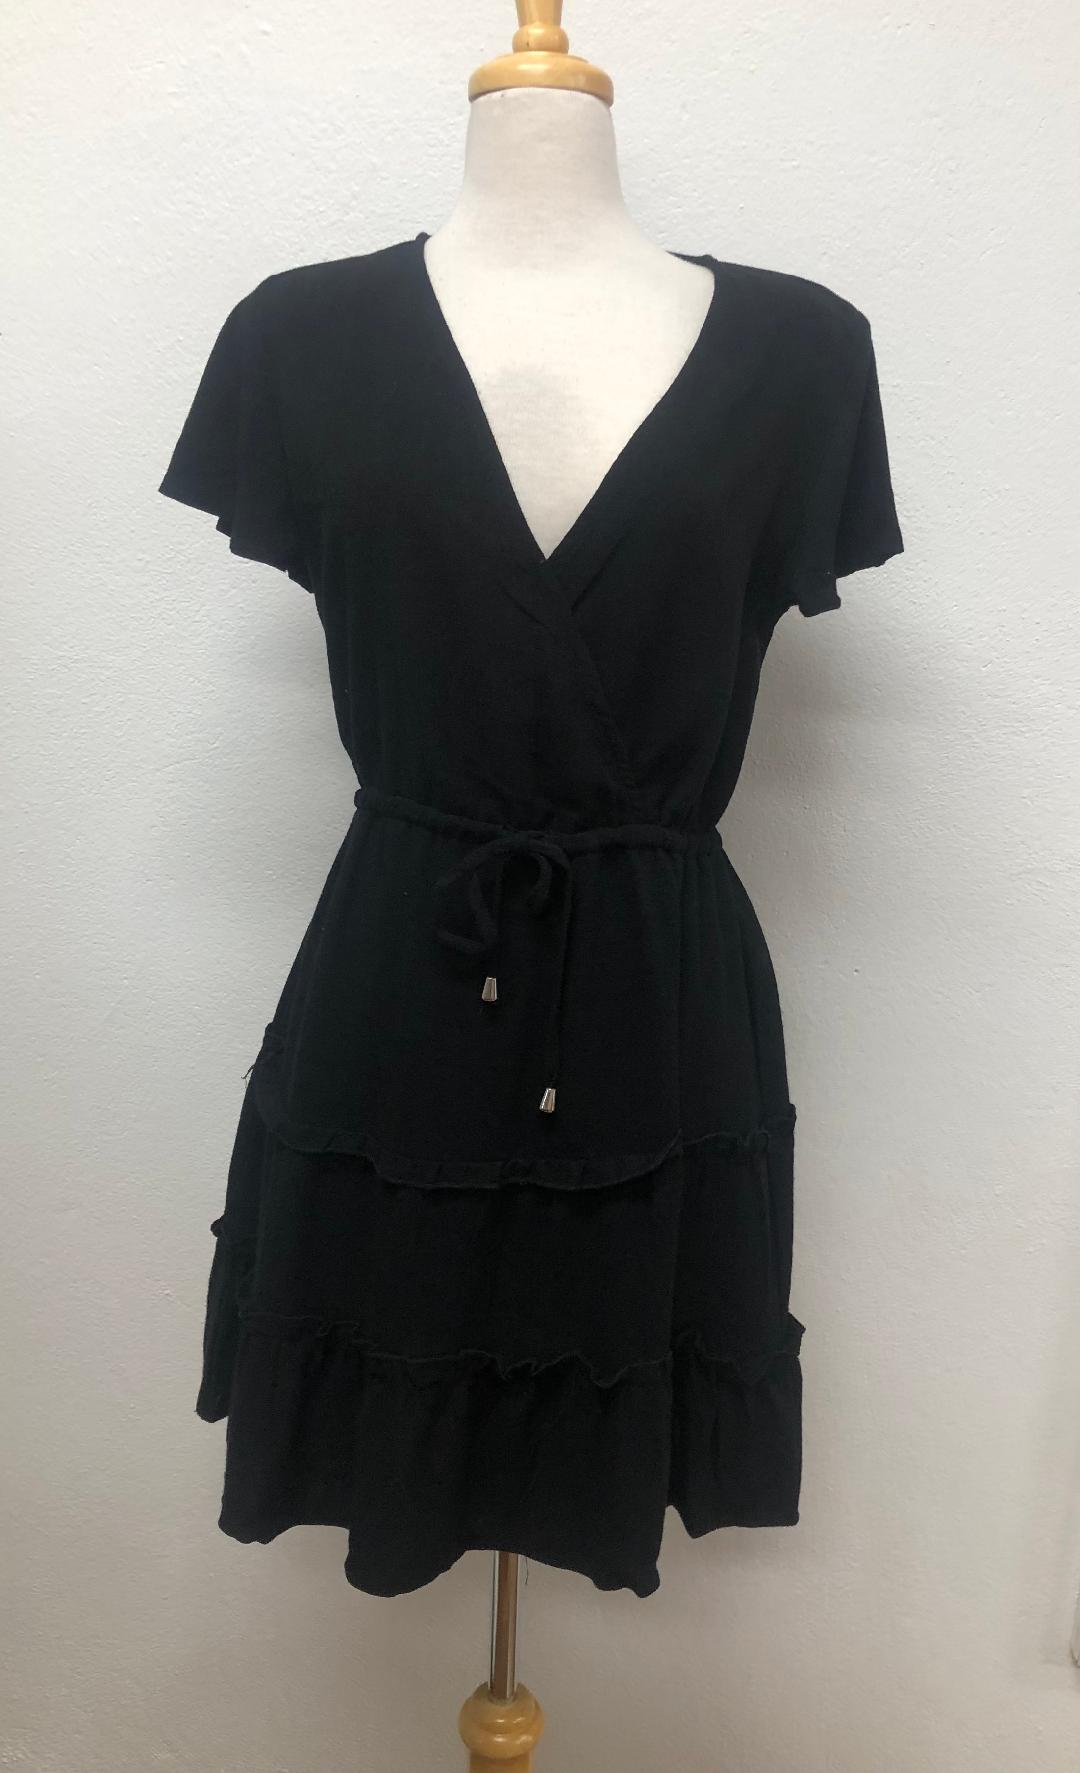 Tammy Black dress